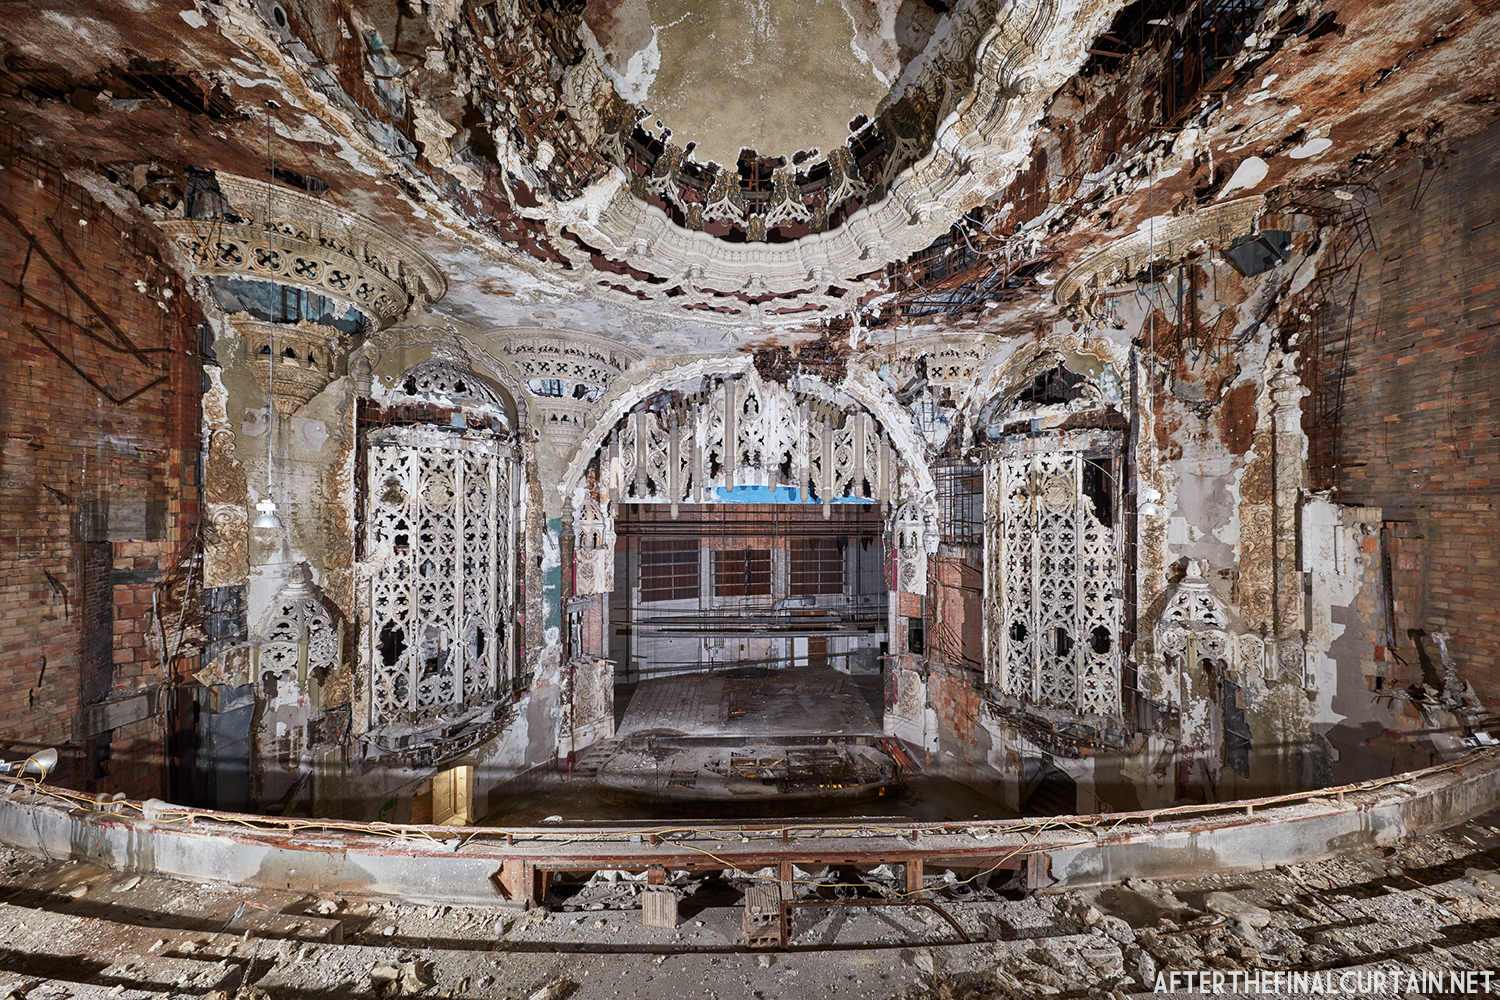 Decaying auditorium of the United Artists Theatre in Detroit